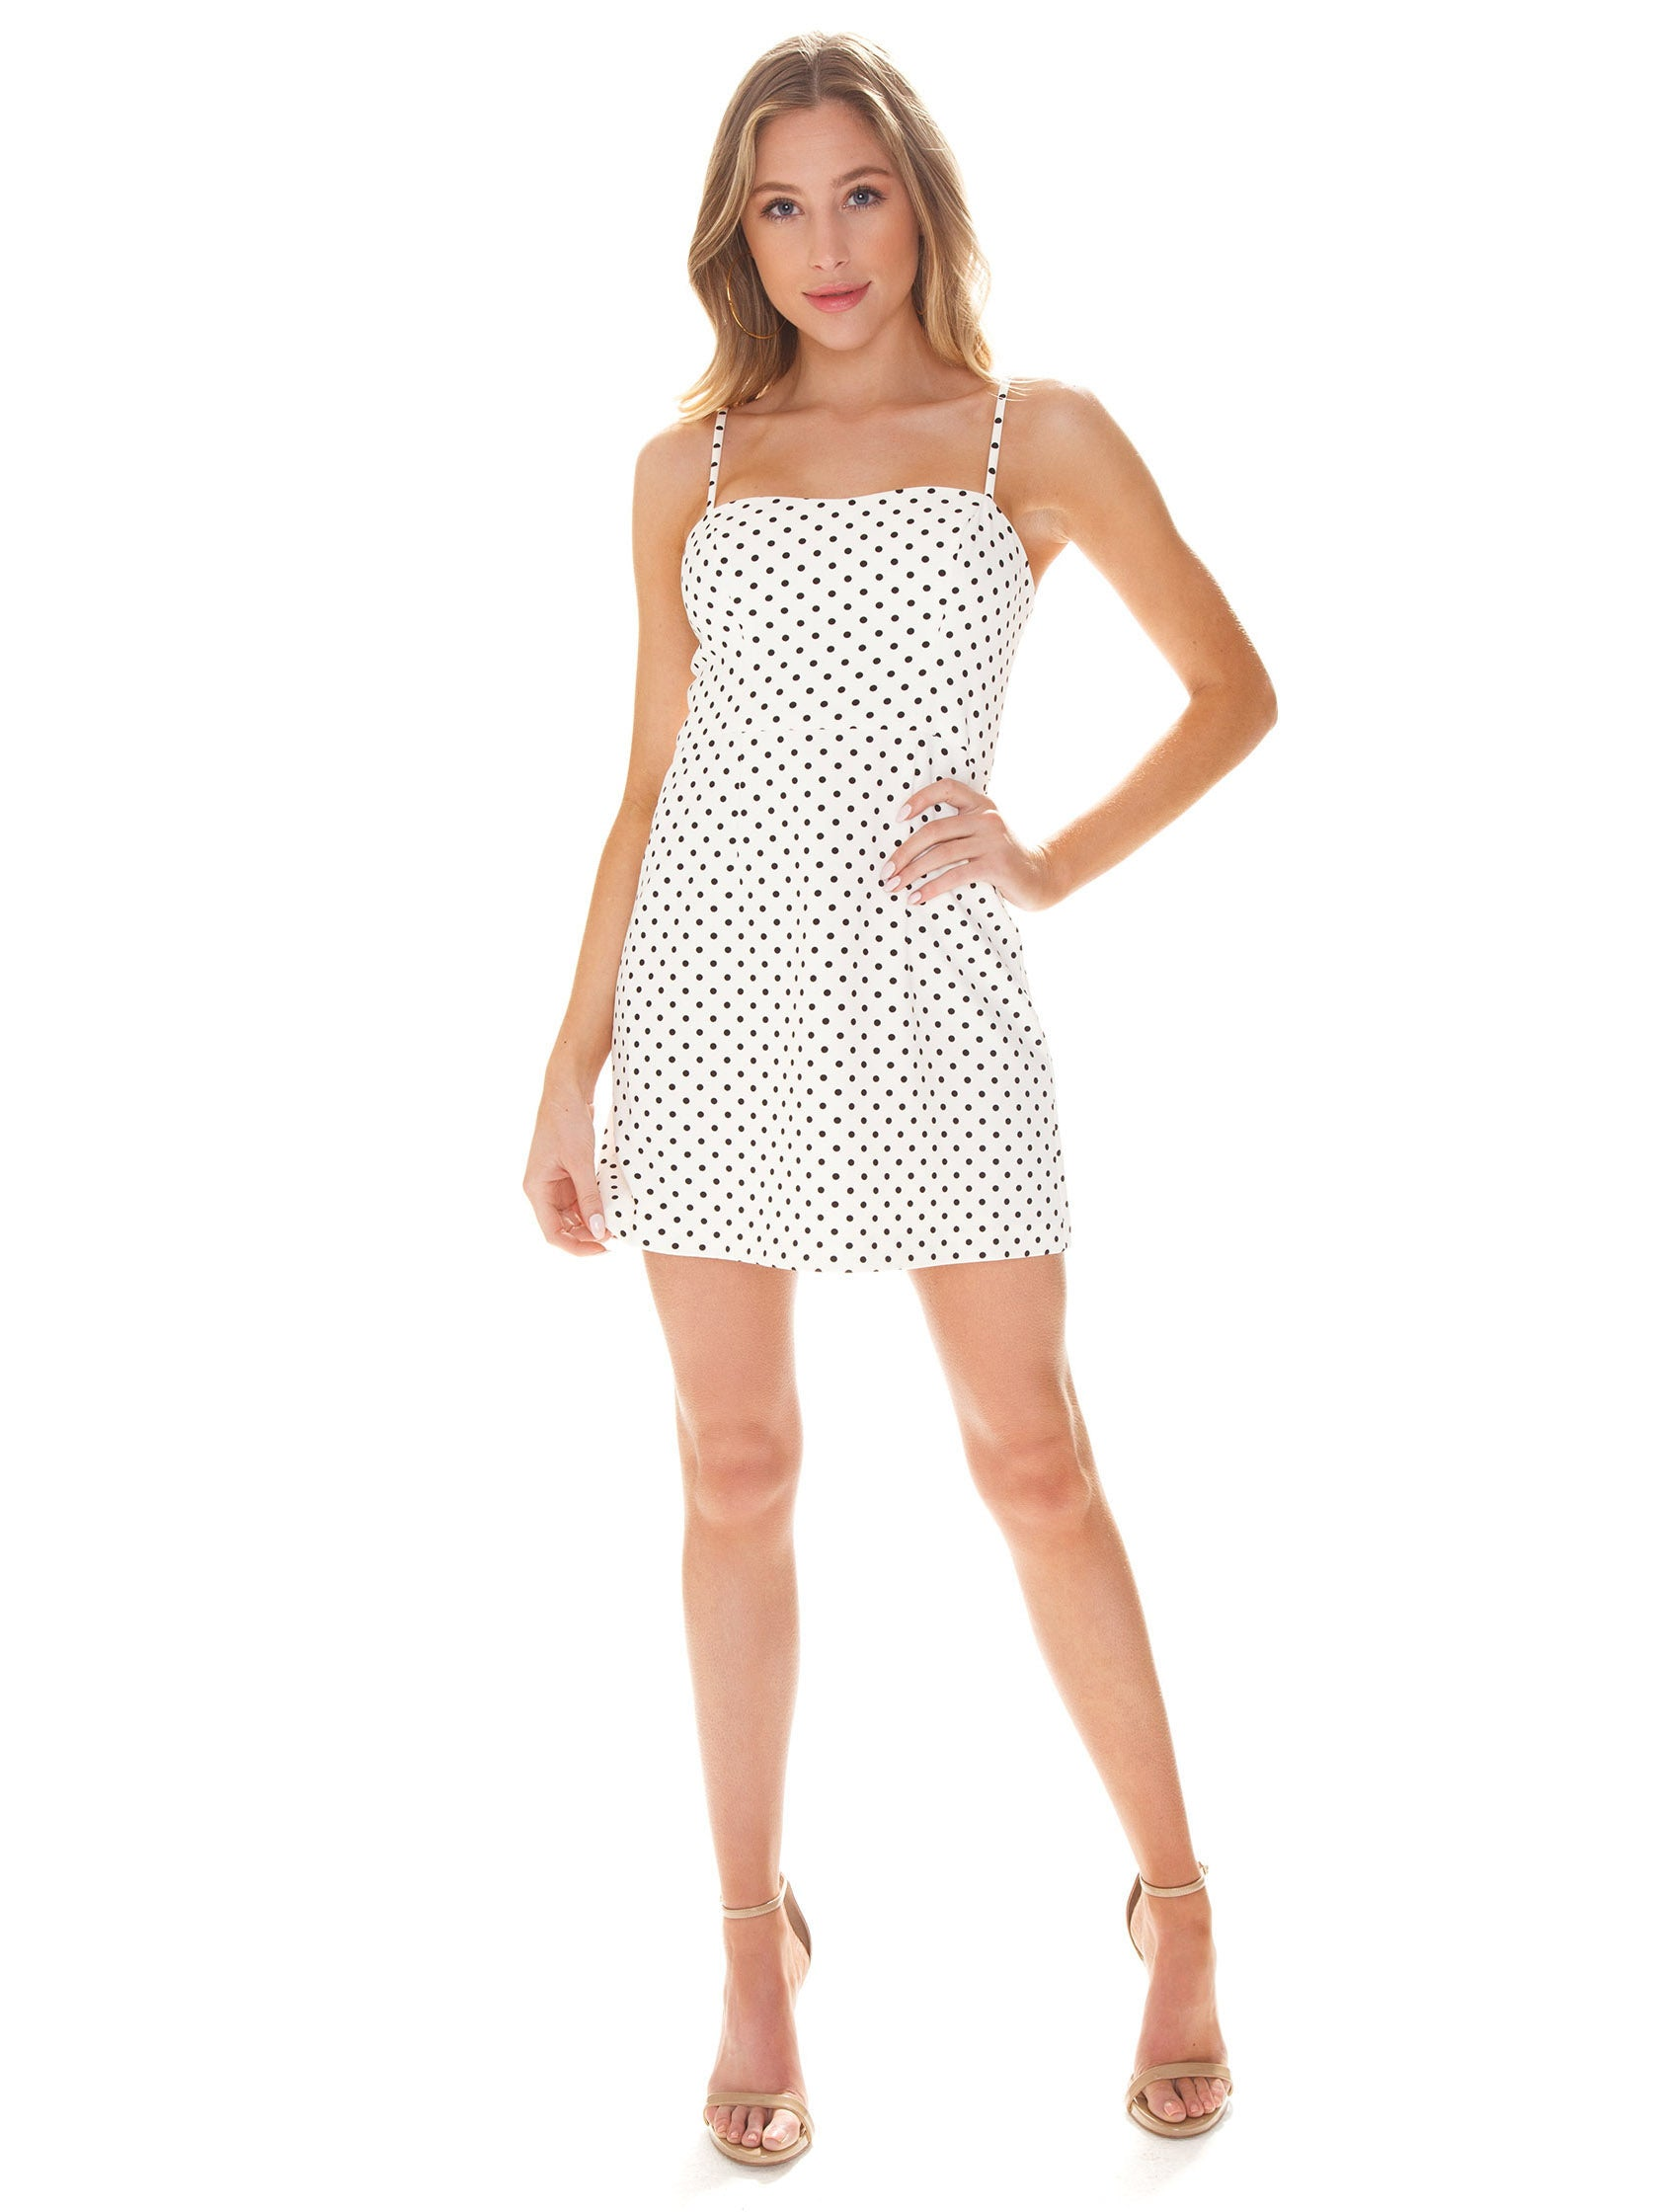 Girl outfit in a dress rental from French Connection called Polka Dot Whisper Dress